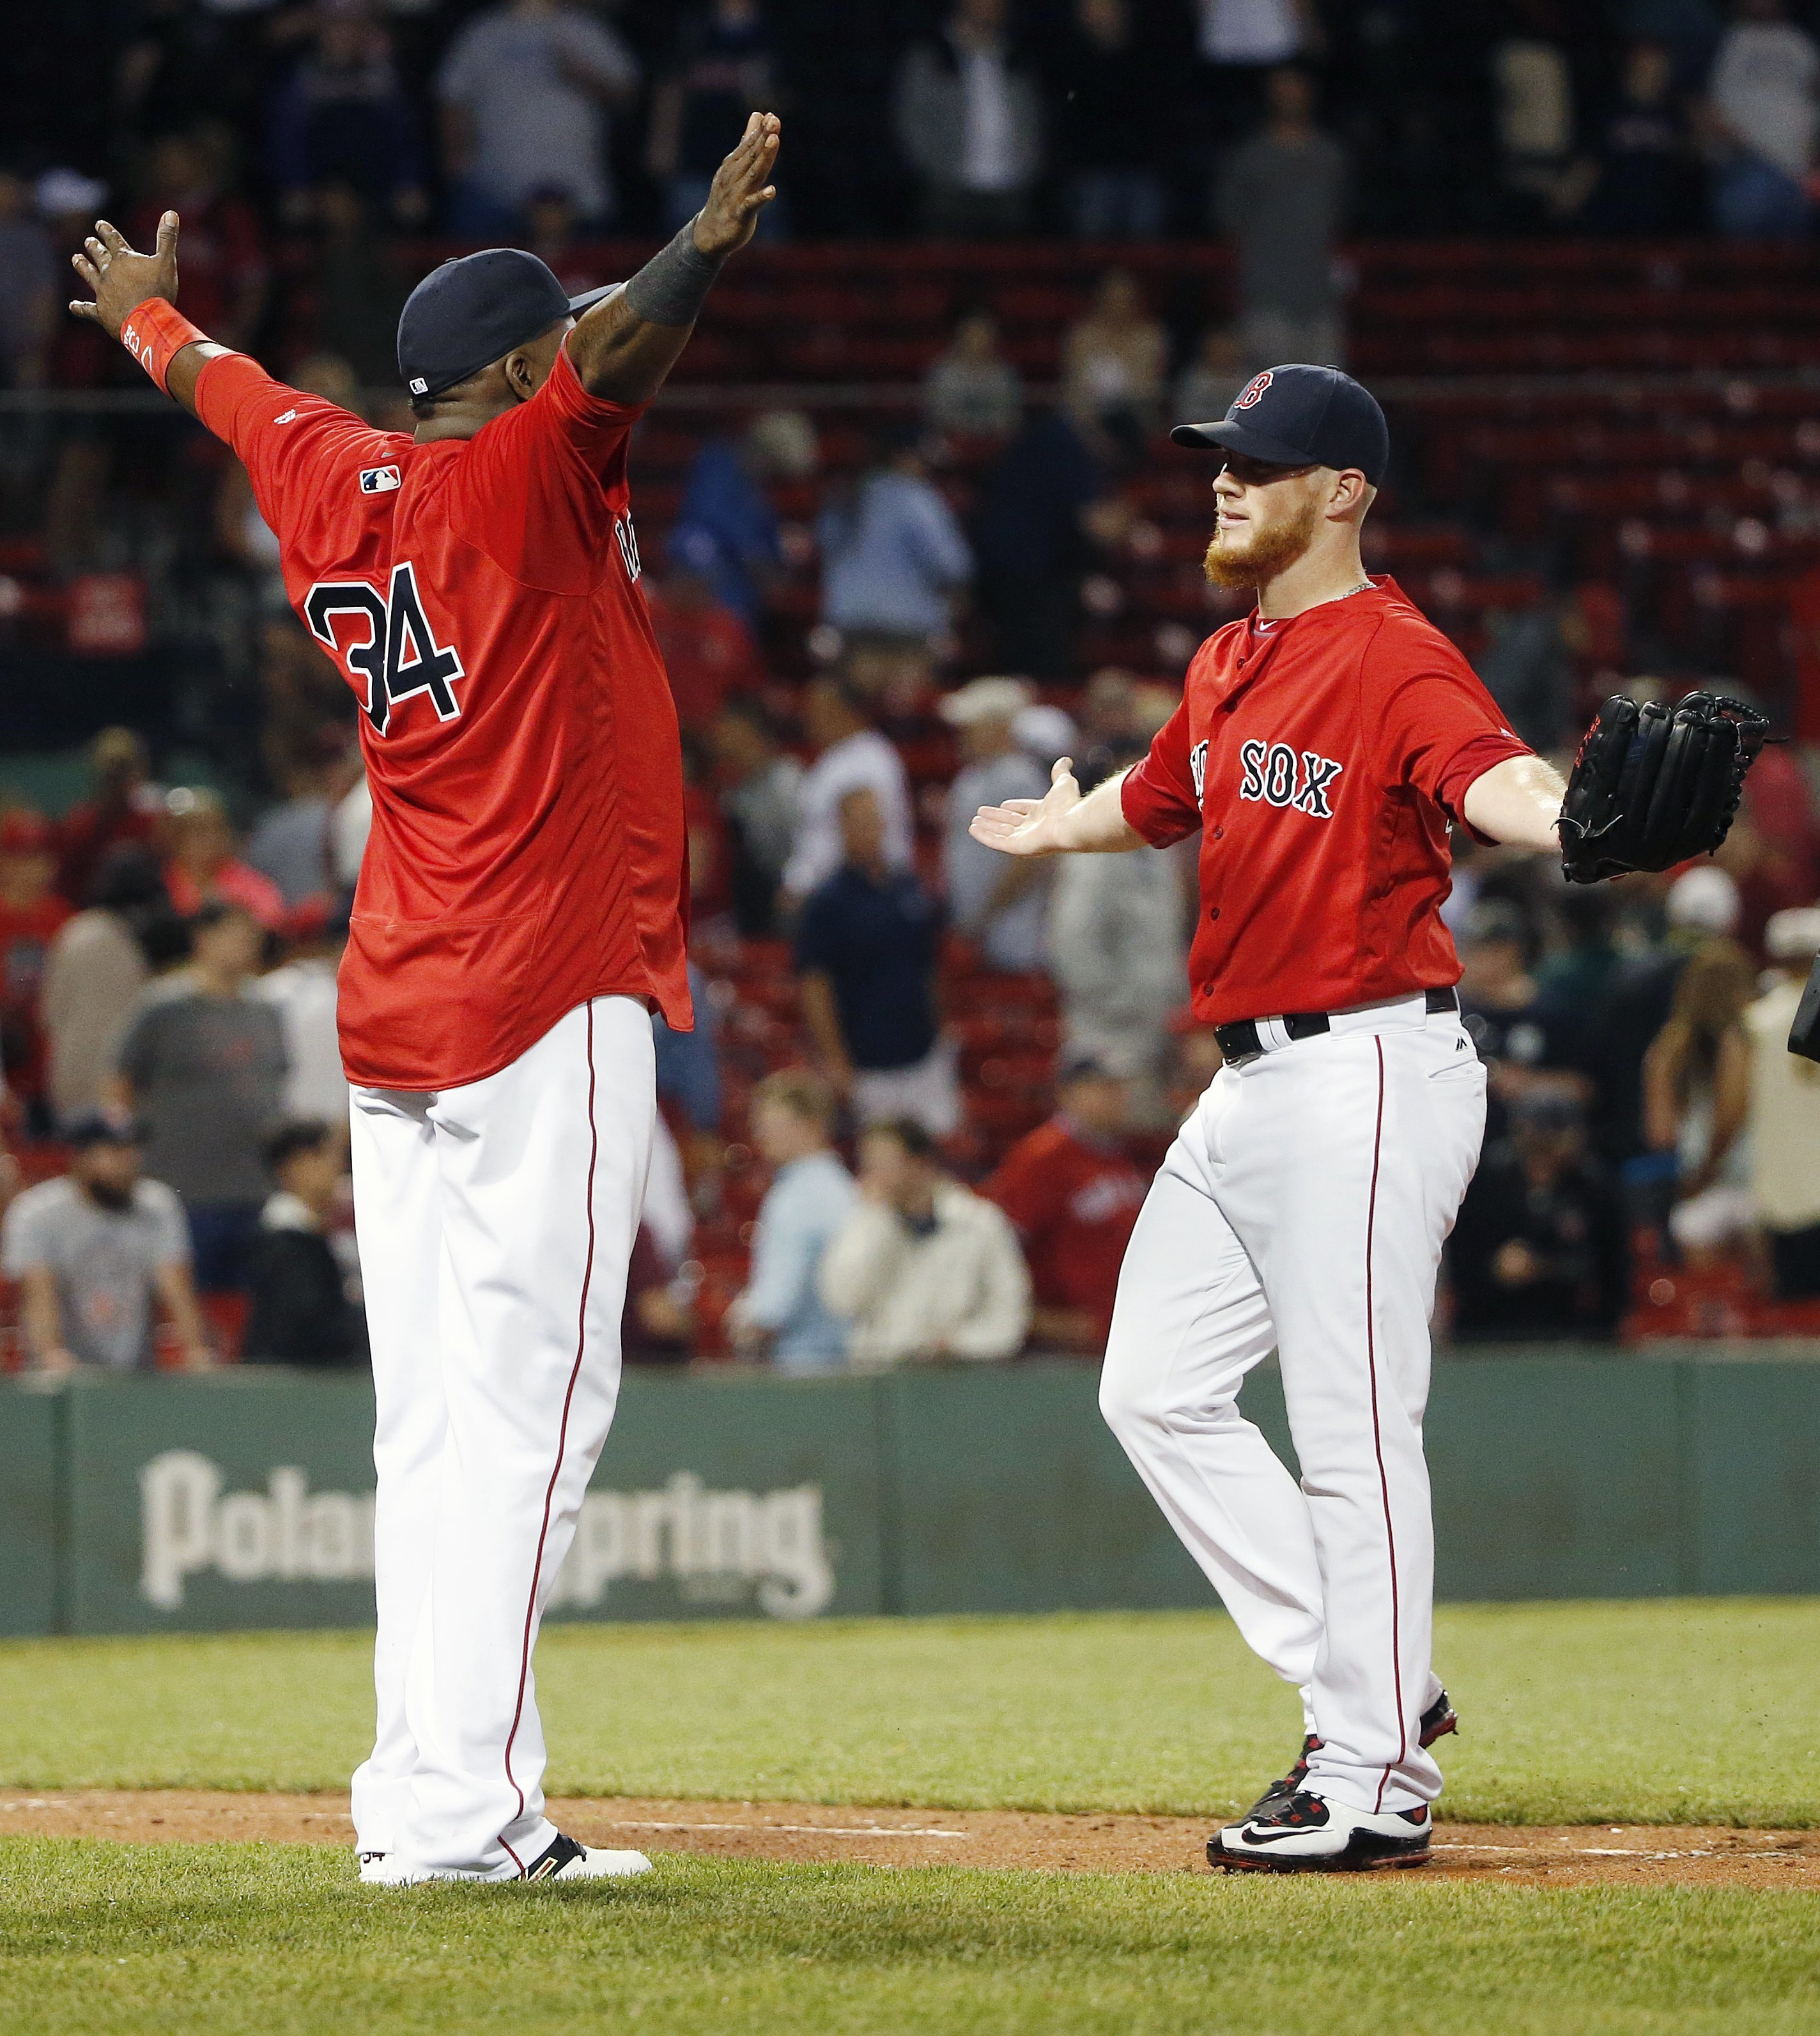 Boston Red Sox's David Ortiz (34) and Craig Kimbrel celebrate after the Red Sox defeated the Los Angeles Angels 5-4 during a baseball game in Boston, early Saturday, July 2, 2016. (AP Photo/Michael Dwyer)